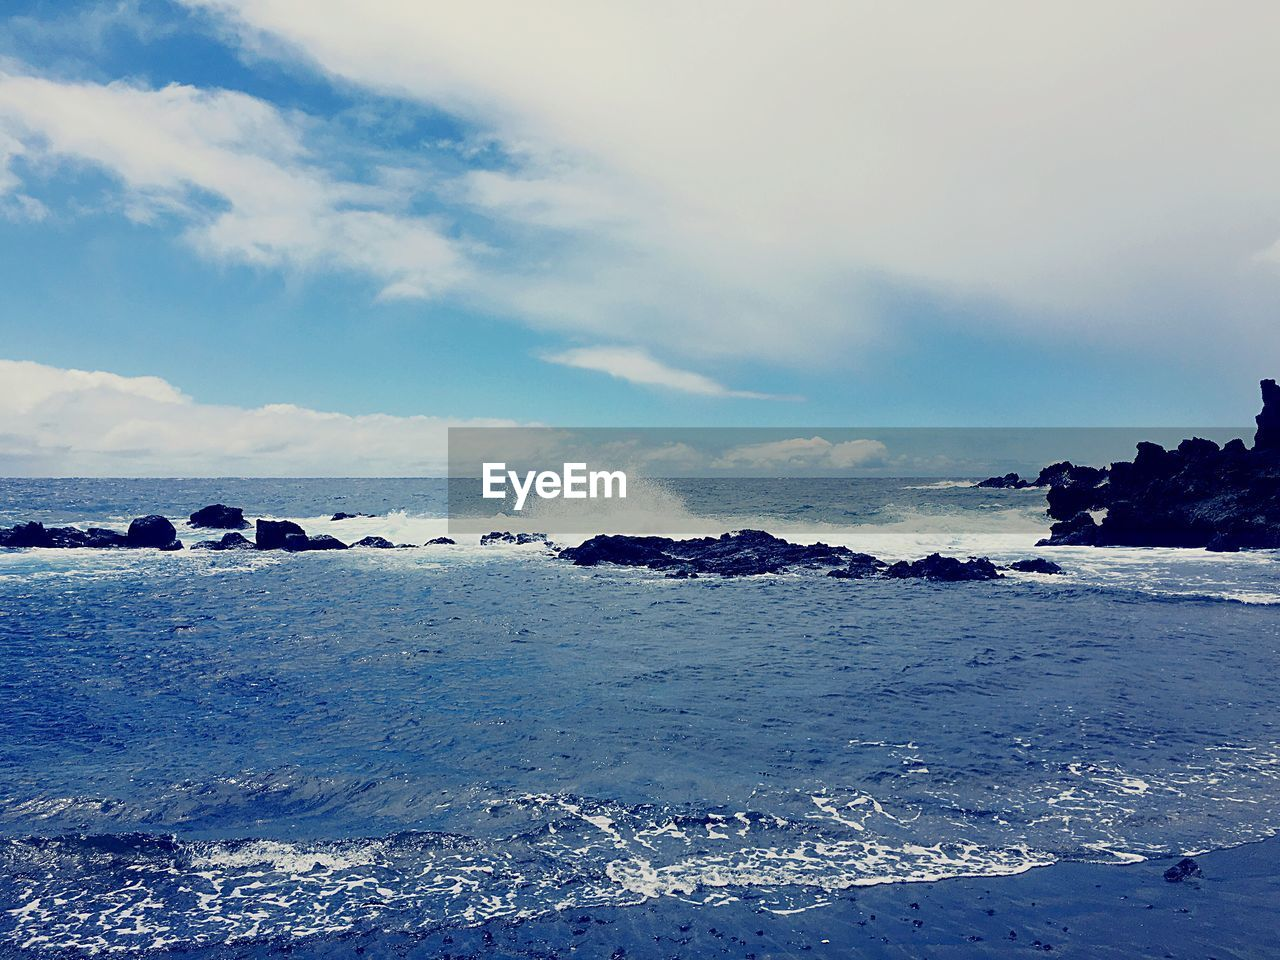 sea, beauty in nature, sky, nature, scenics, horizon over water, water, tranquility, cloud - sky, tranquil scene, outdoors, beach, no people, day, wave, iceberg